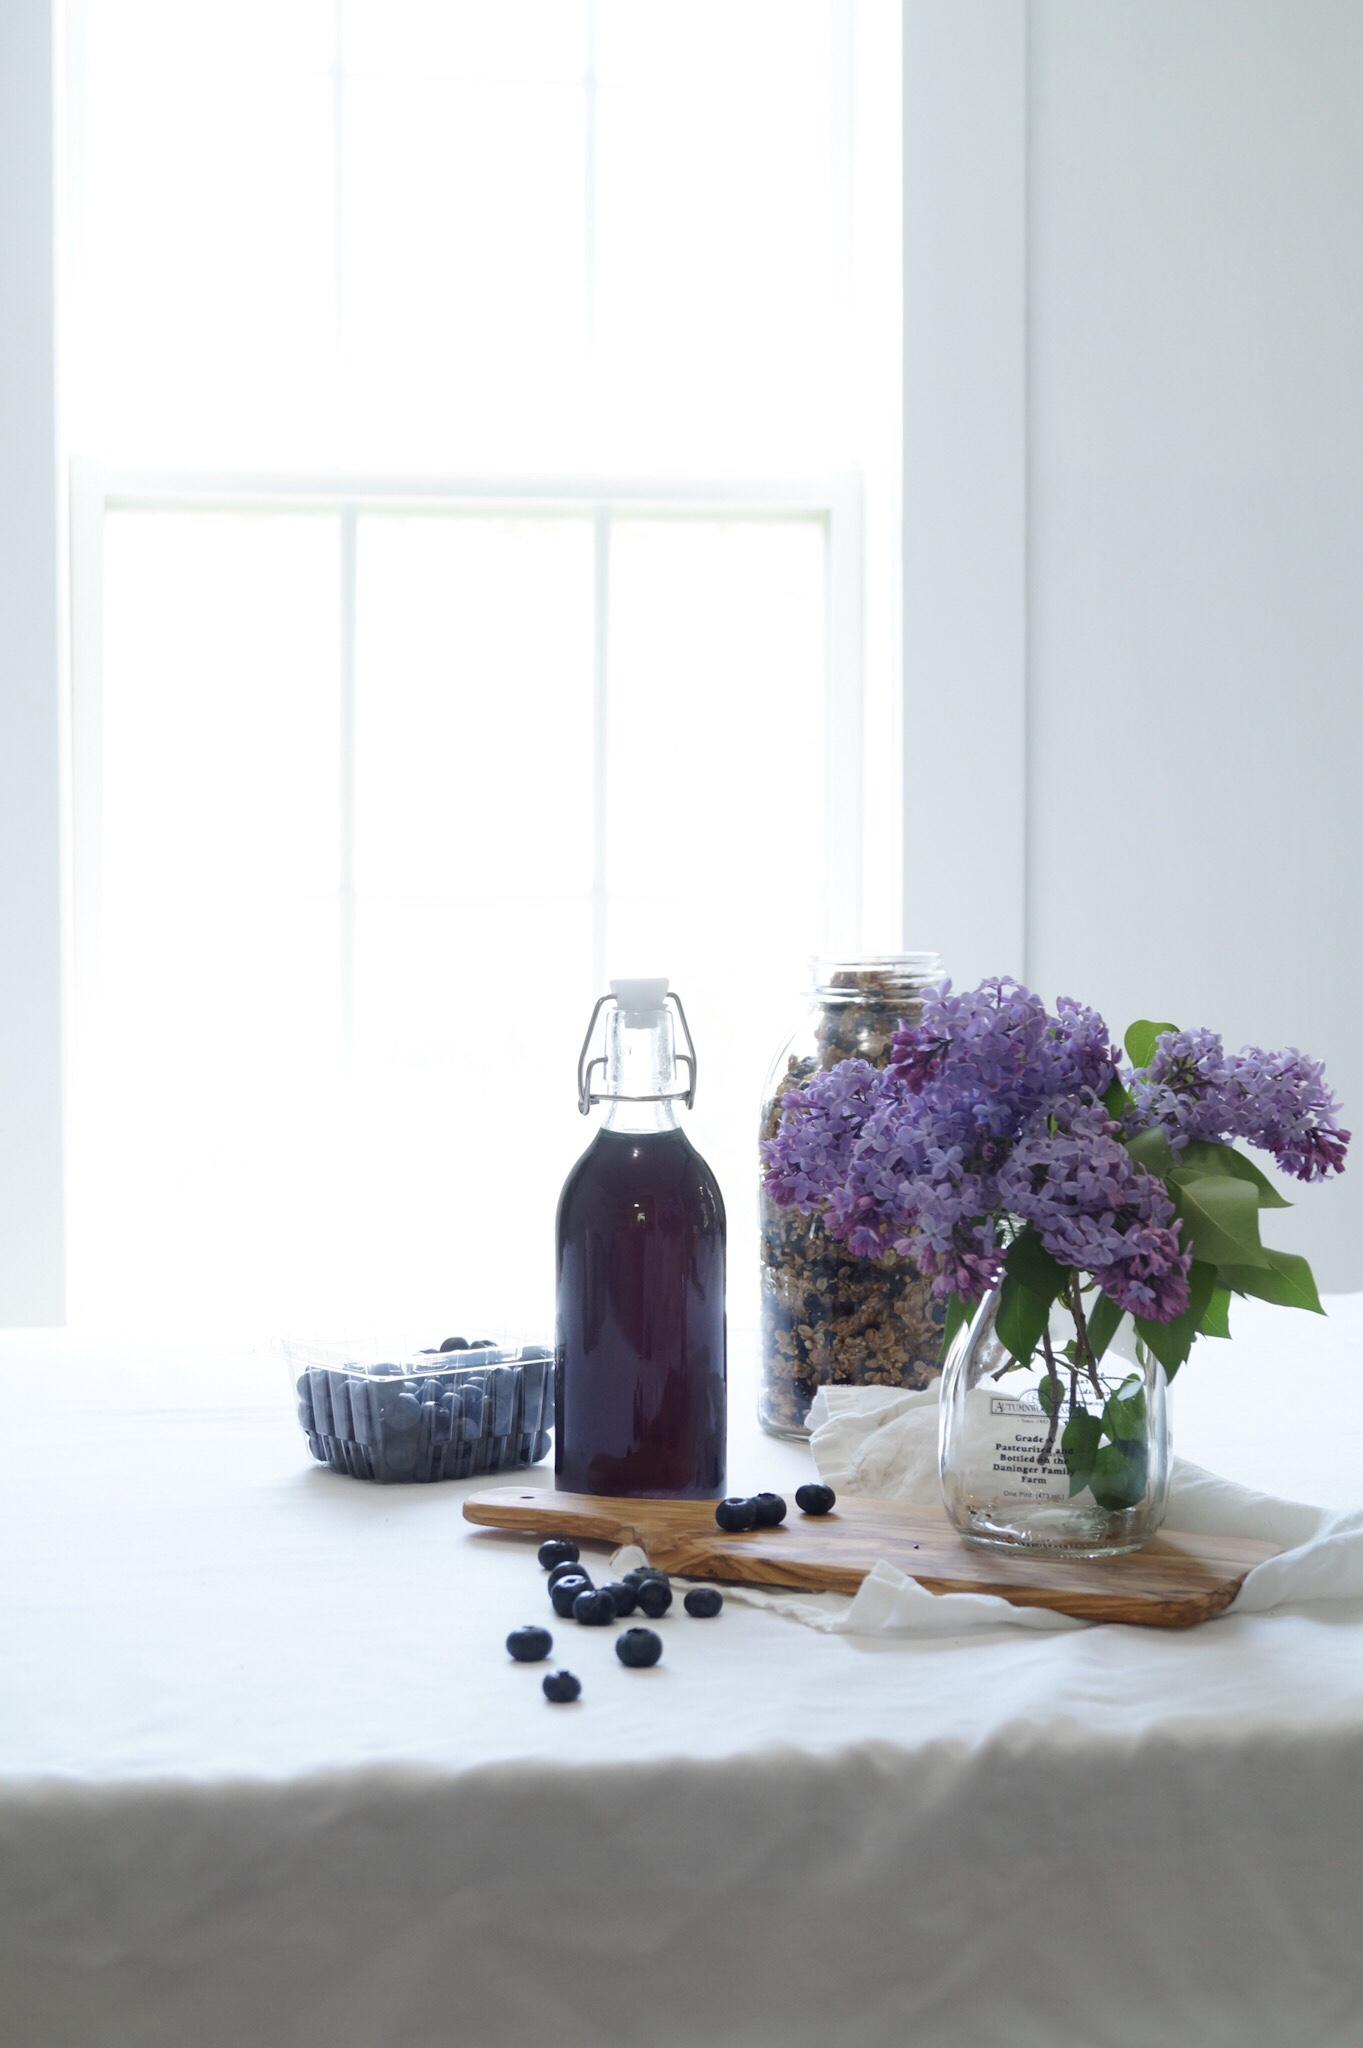 Wild lilacs, lilac Syrup